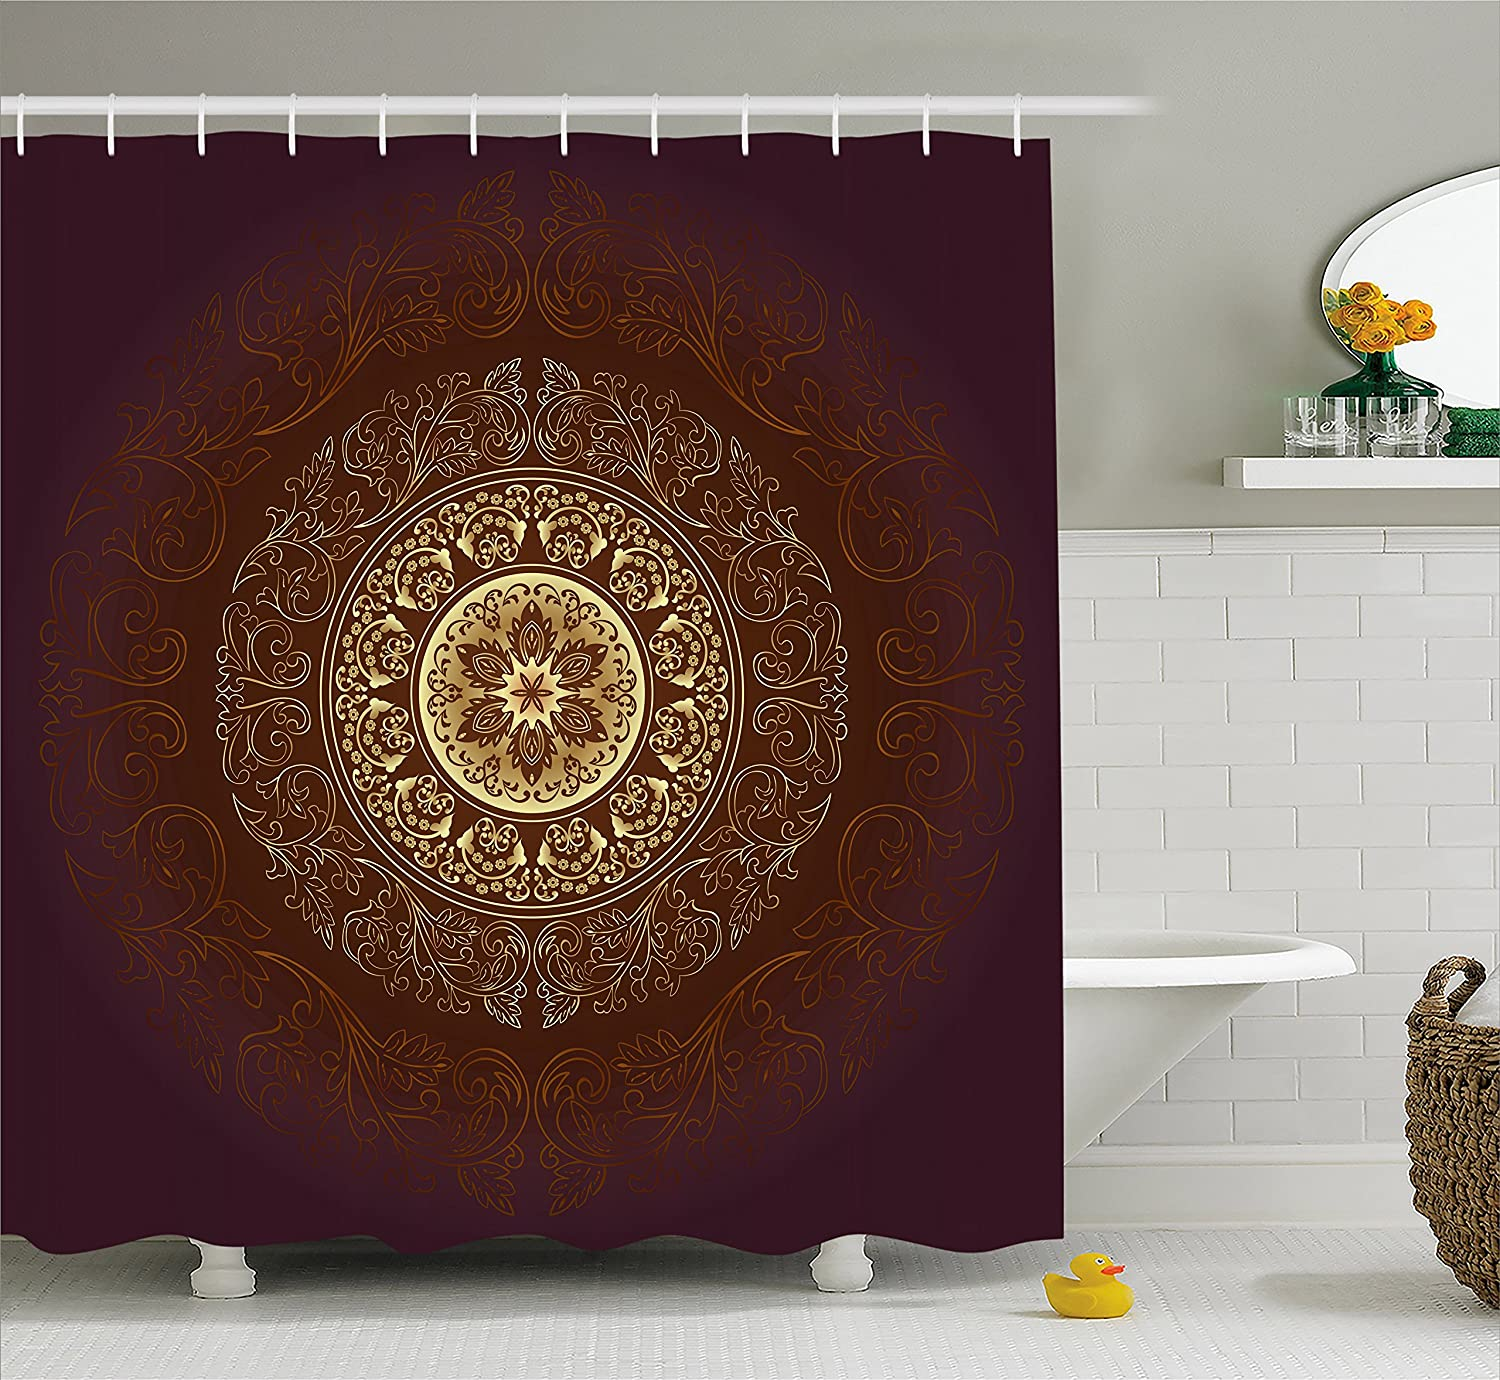 Ambesonne Ancient Shower Curtain European Landmark Traveller Tourist Cities Italy France Spain Sketchy Image 70 Inches Fabric Bathroom Decor Set with Hooks Brown Cream